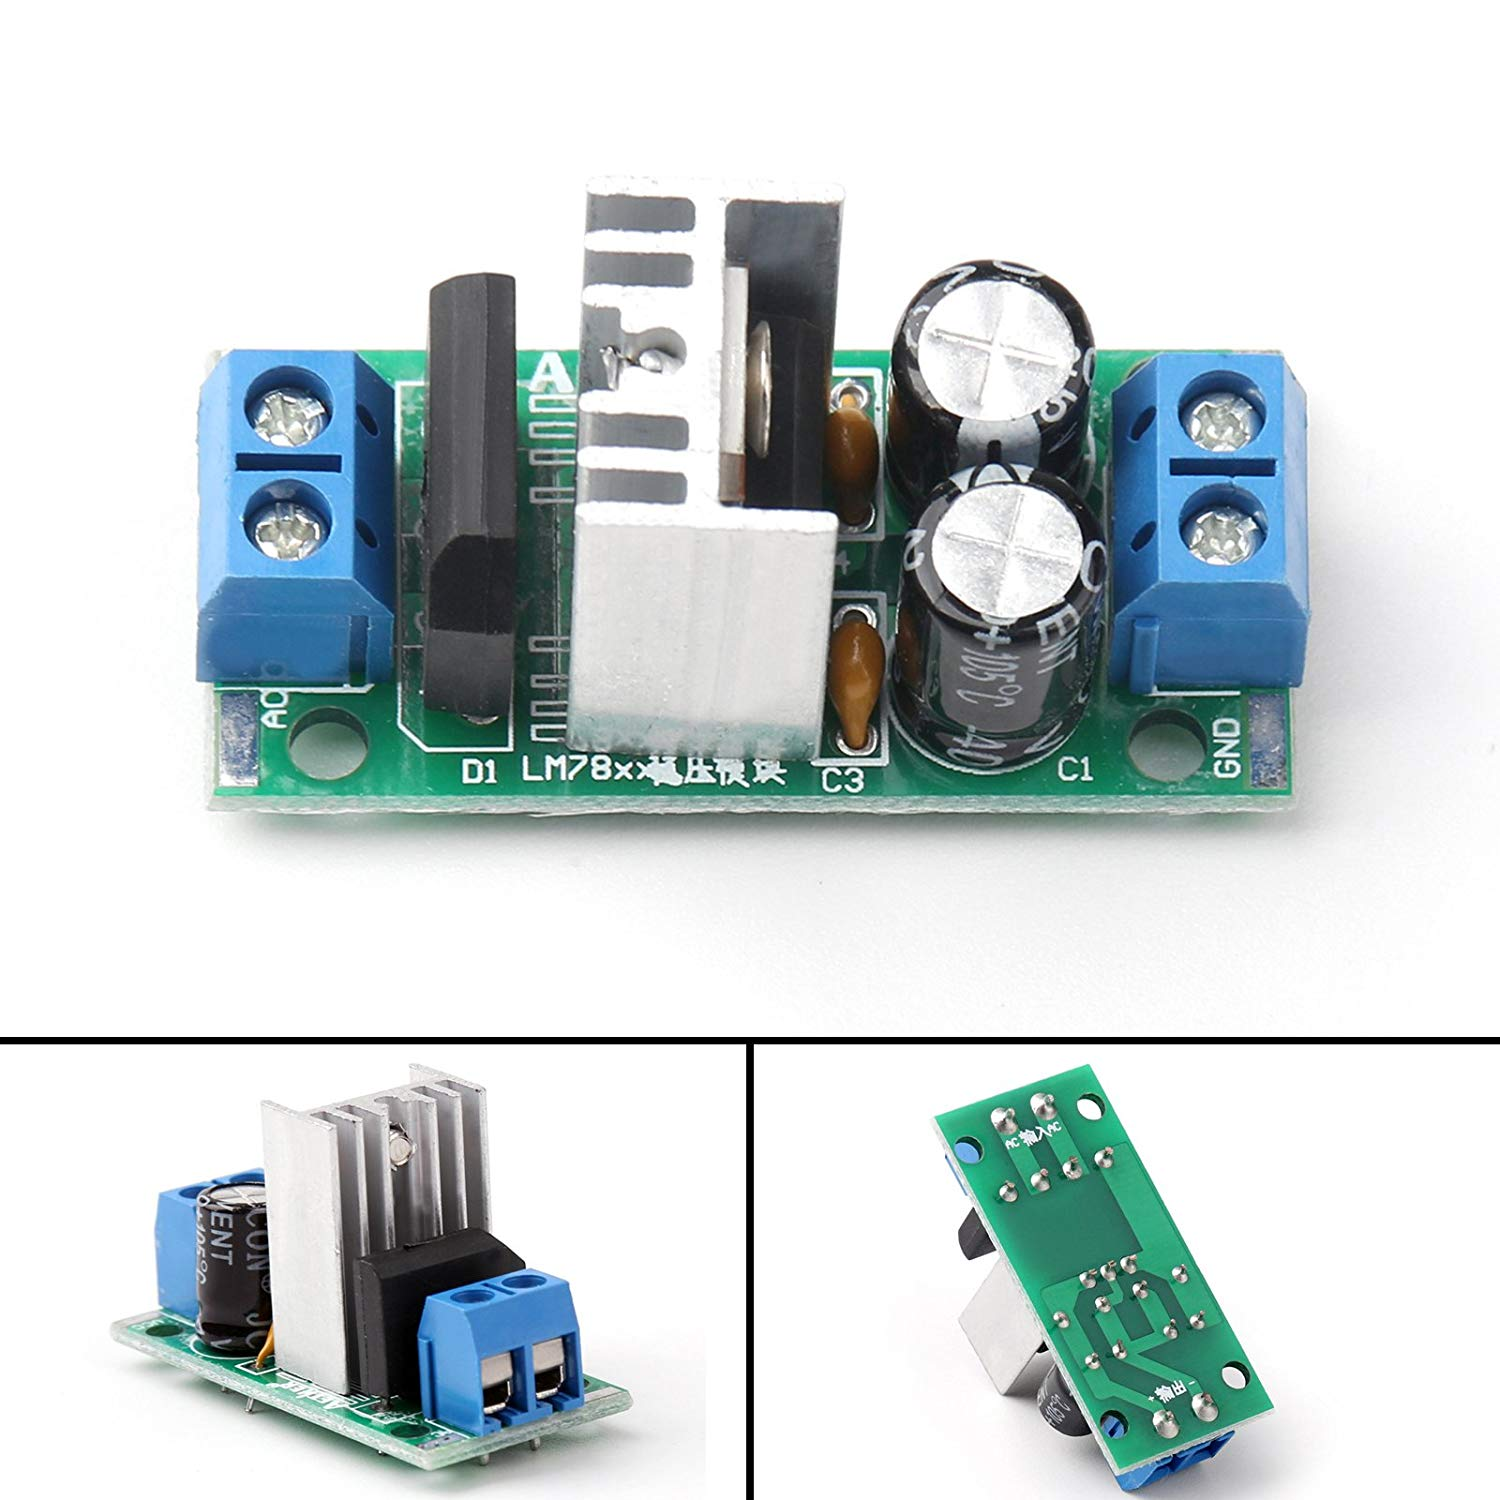 Cheap Ic 7805 Find Deals On Line At Alibabacom Pin Configuration And Voltage Regulator Circuit Get Quotations Areyourshop 1pcs L7805 Lm7805 5v Regulated Power Supply Three Terminal Module